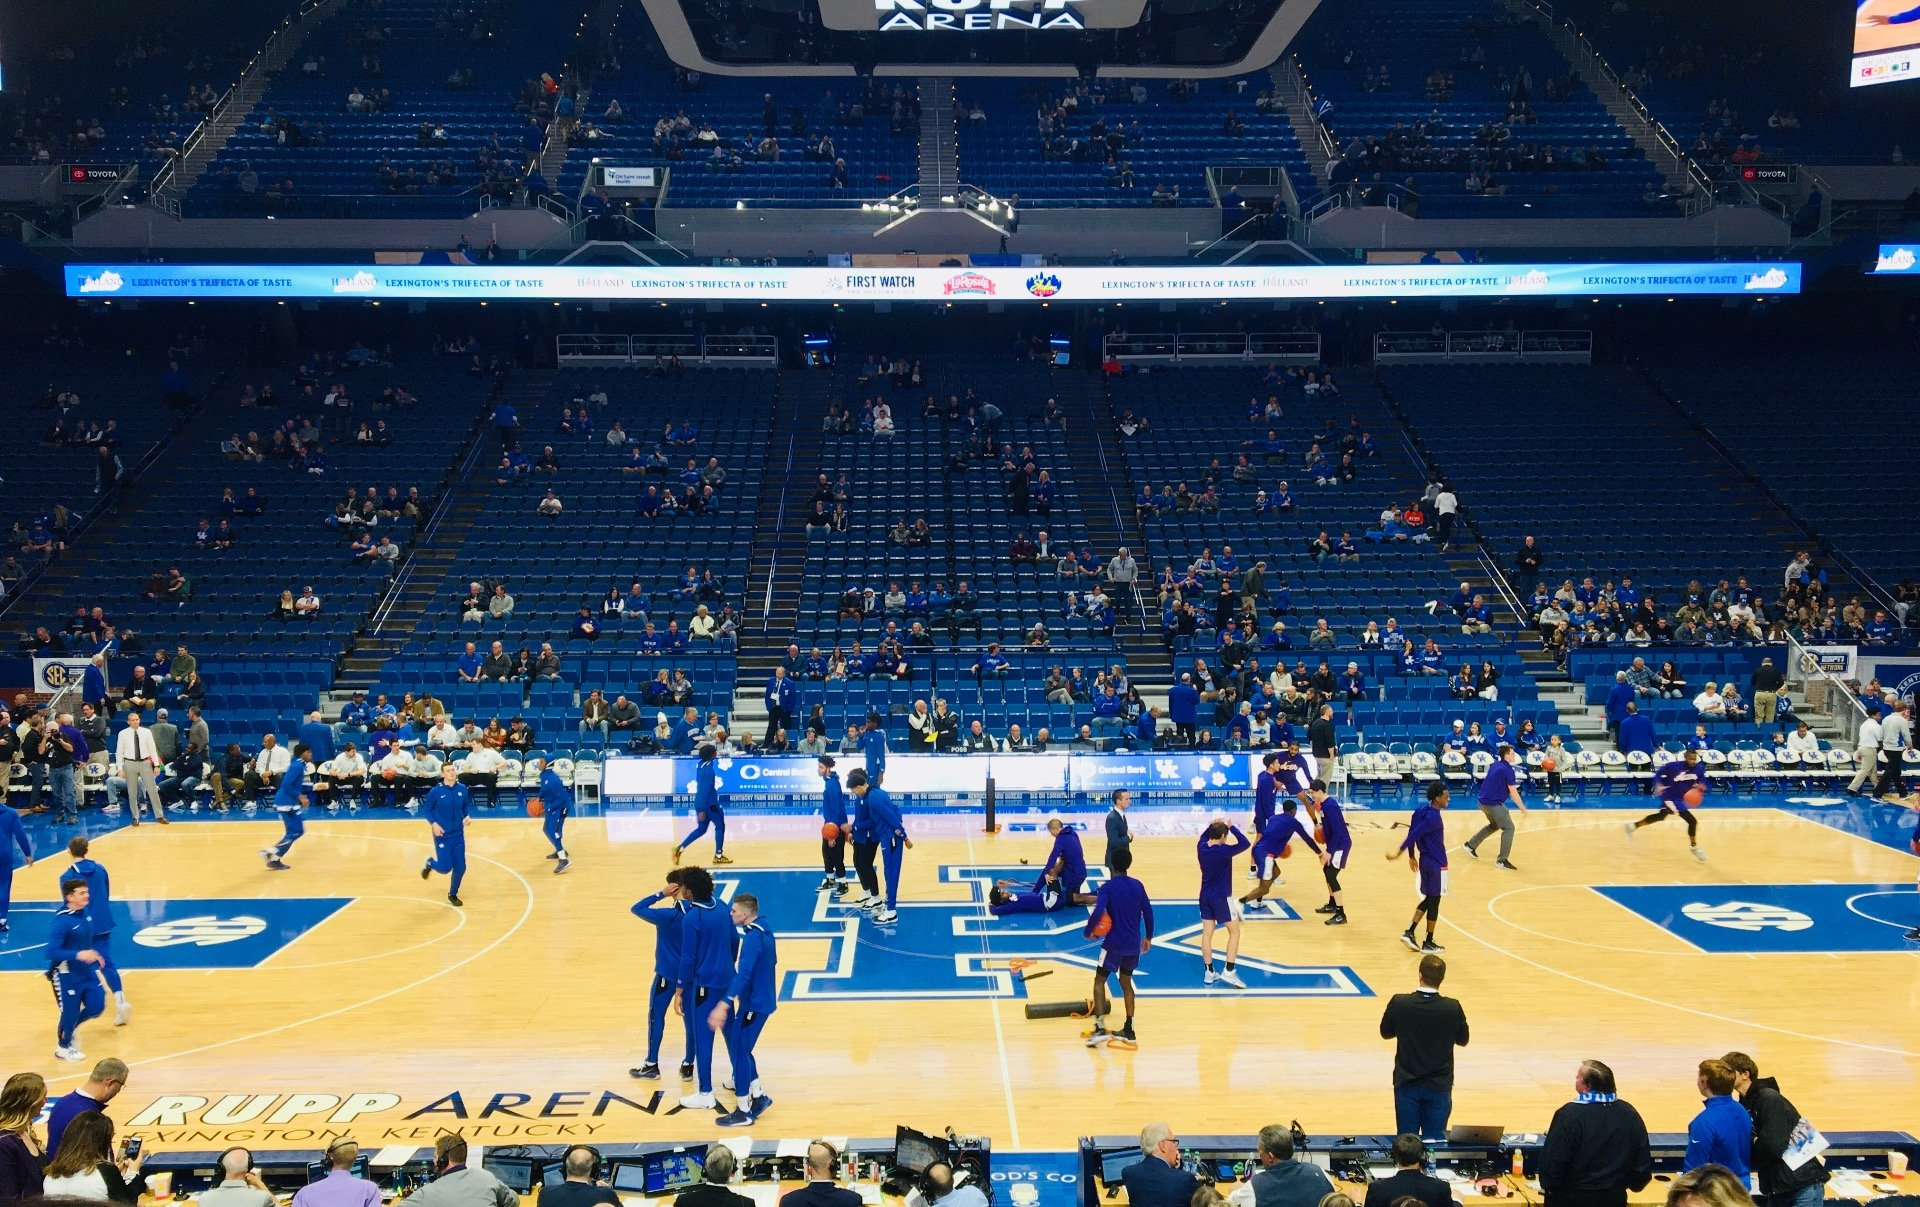 Rupp Arena Section 14 Row G Seat 9